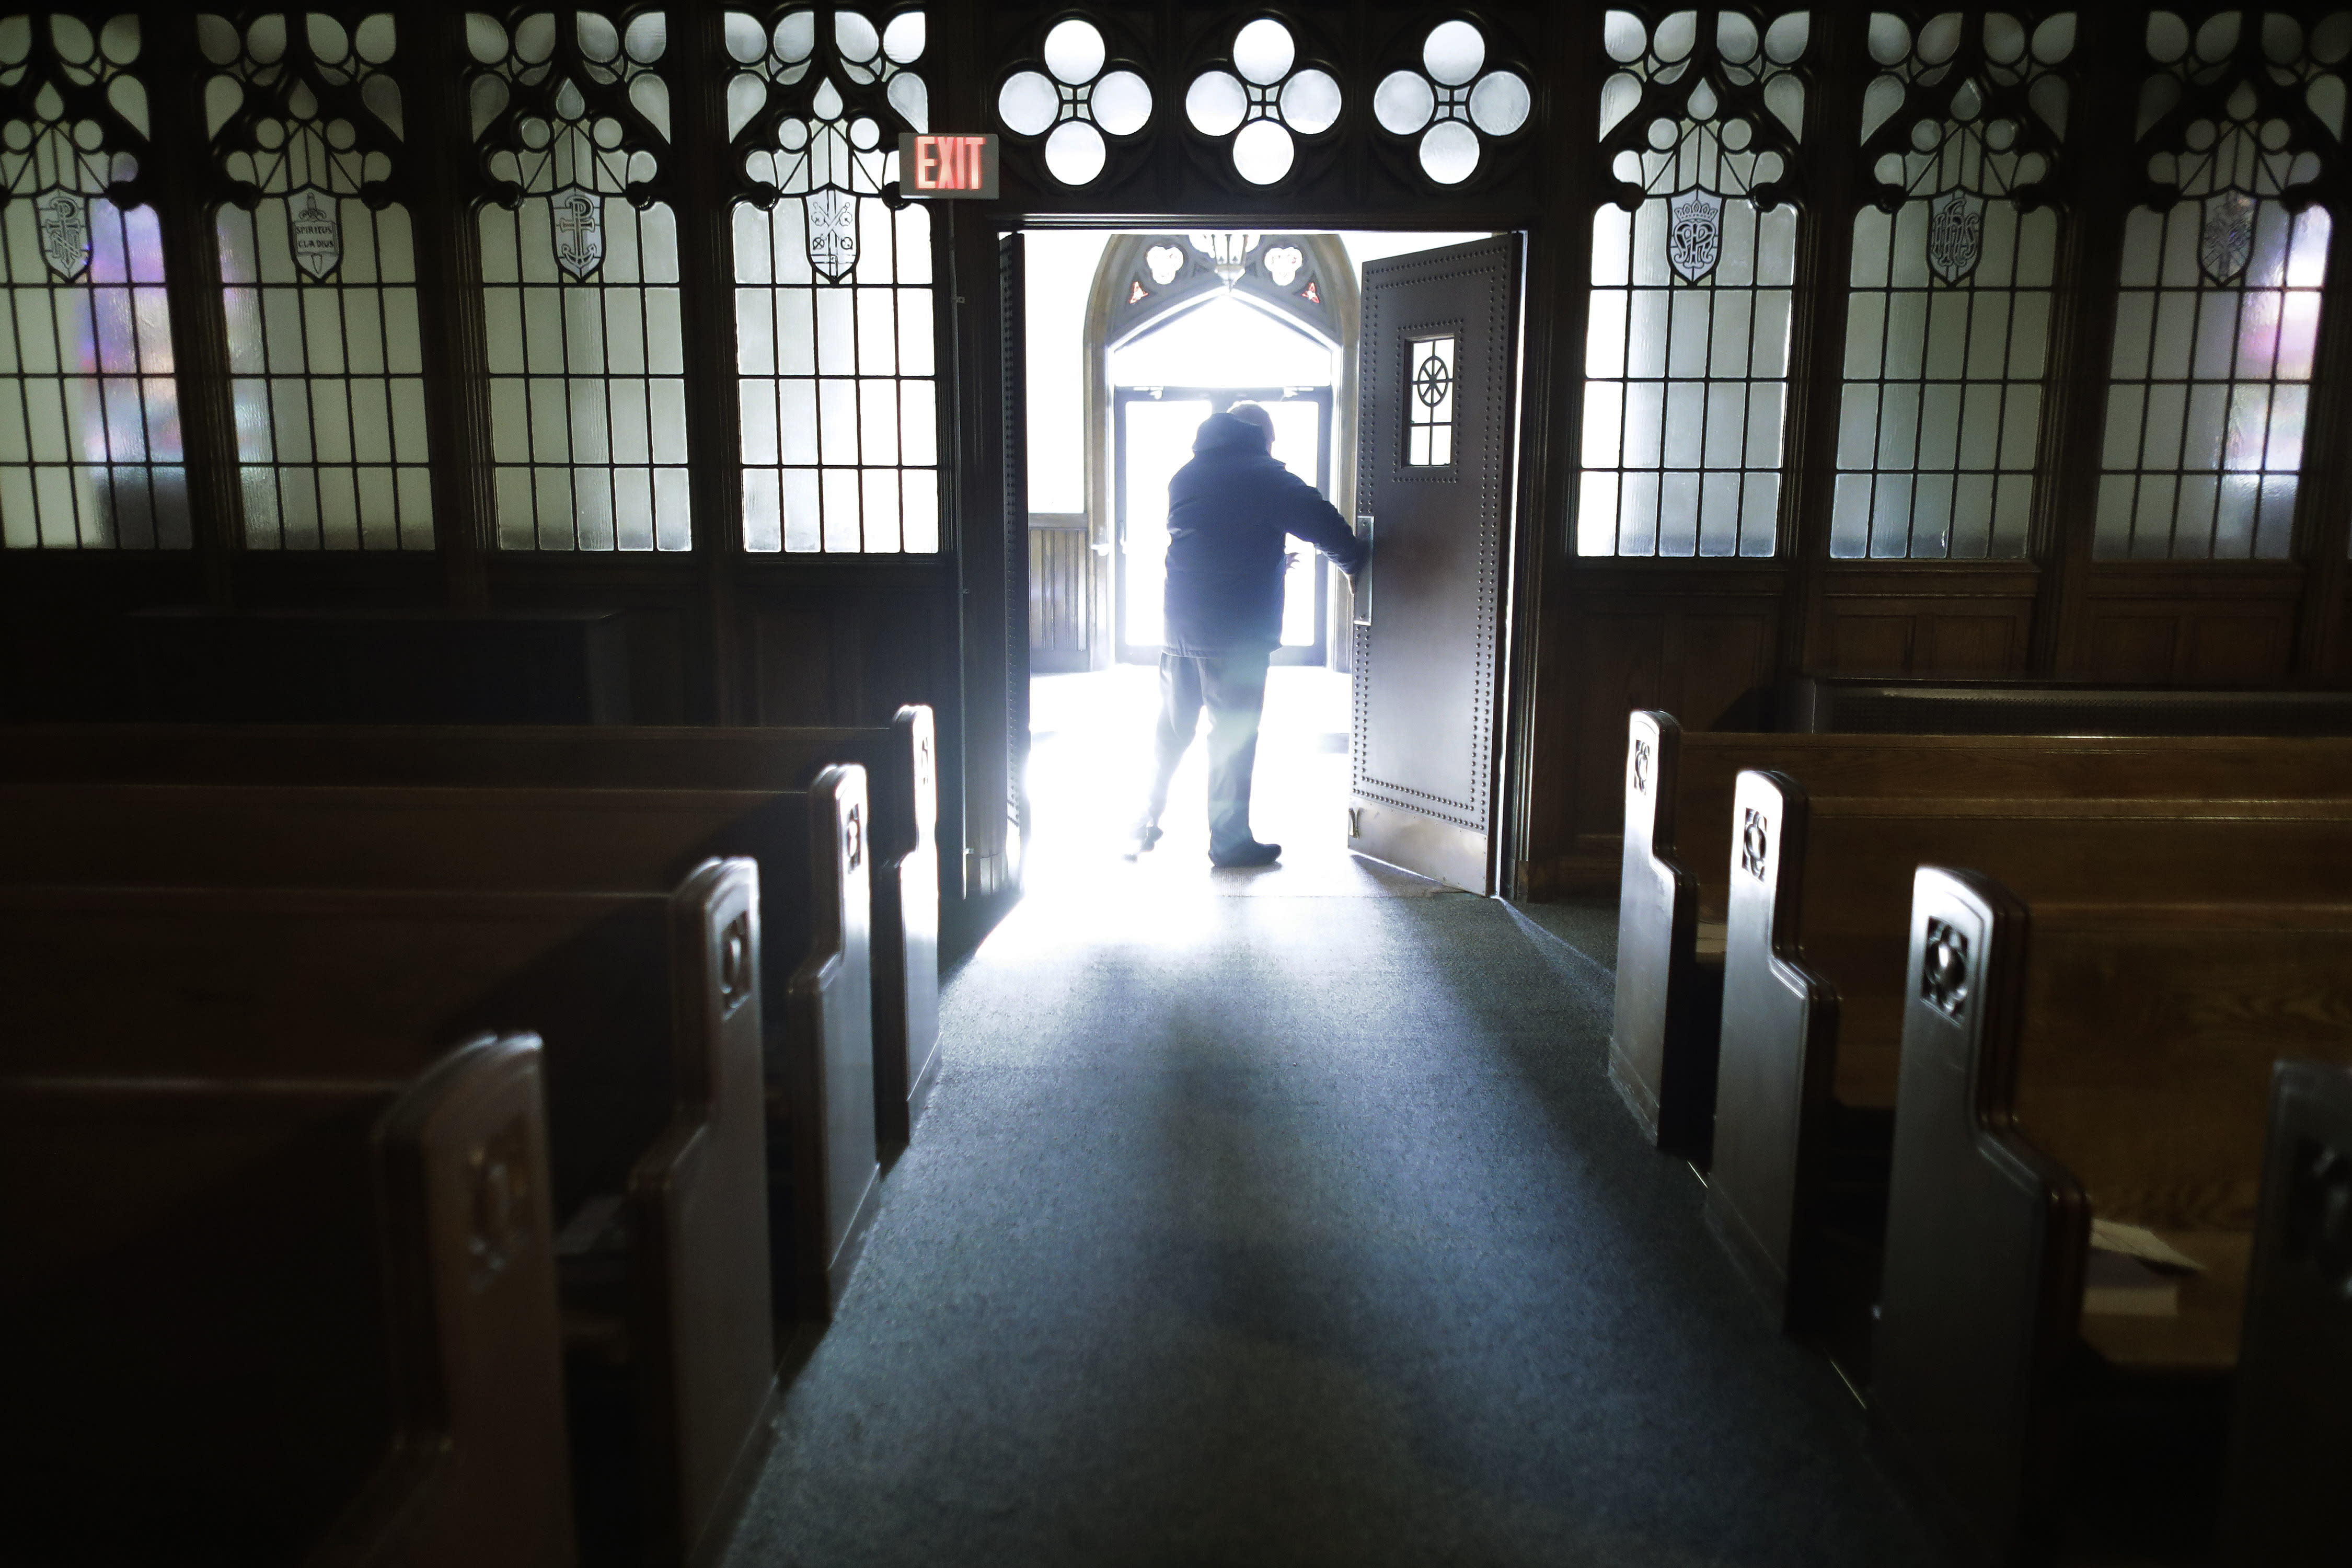 In this Saturday, Nov. 9, 2019 photo, Rev. Mark Stelzer, administrator of St. Jerome's Parish, in Holyoke, Mass., opens doors to the Catholic church before offering Mass. Stelzer, also a professor and chaplain at College of Our Lady of the Elms, in Chicopee, Mass., lives alone in the rectory at St. Jerome's while serving as spiritual leader to the 500 families in the Catholic parish. (AP Photo/Steven Senne)